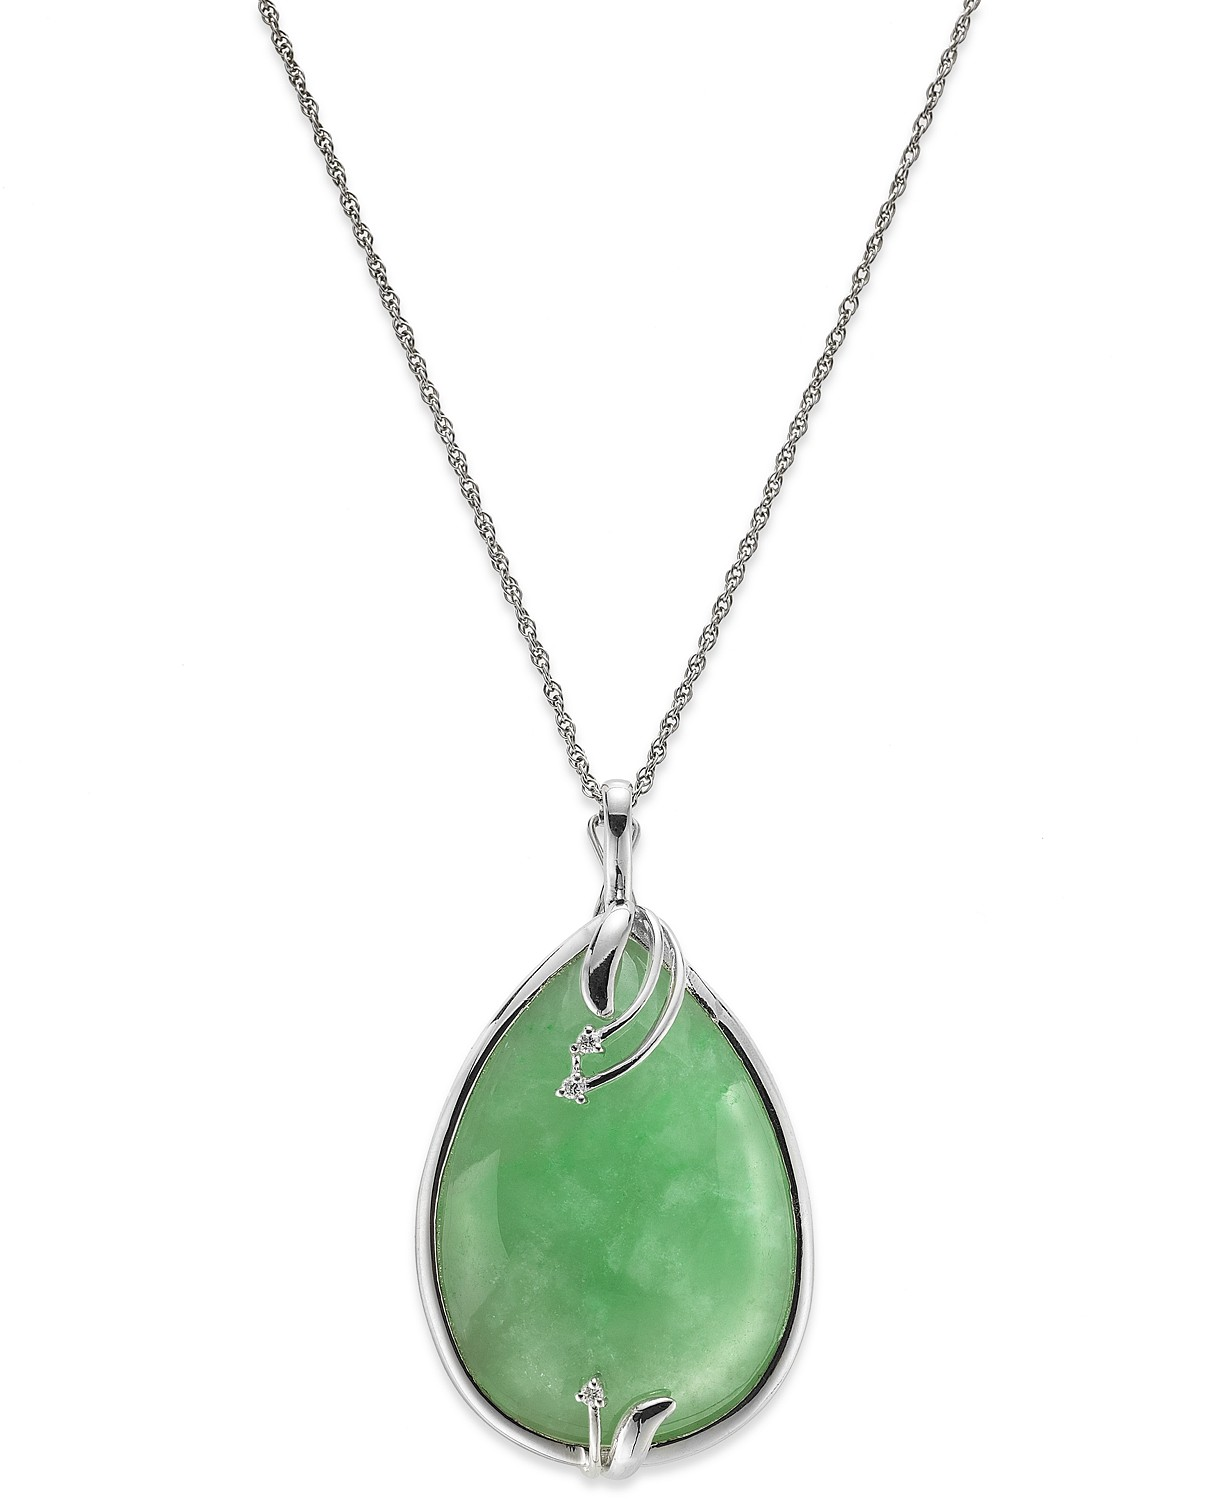 Jade Flash Sale: 60-75% off Jewelry